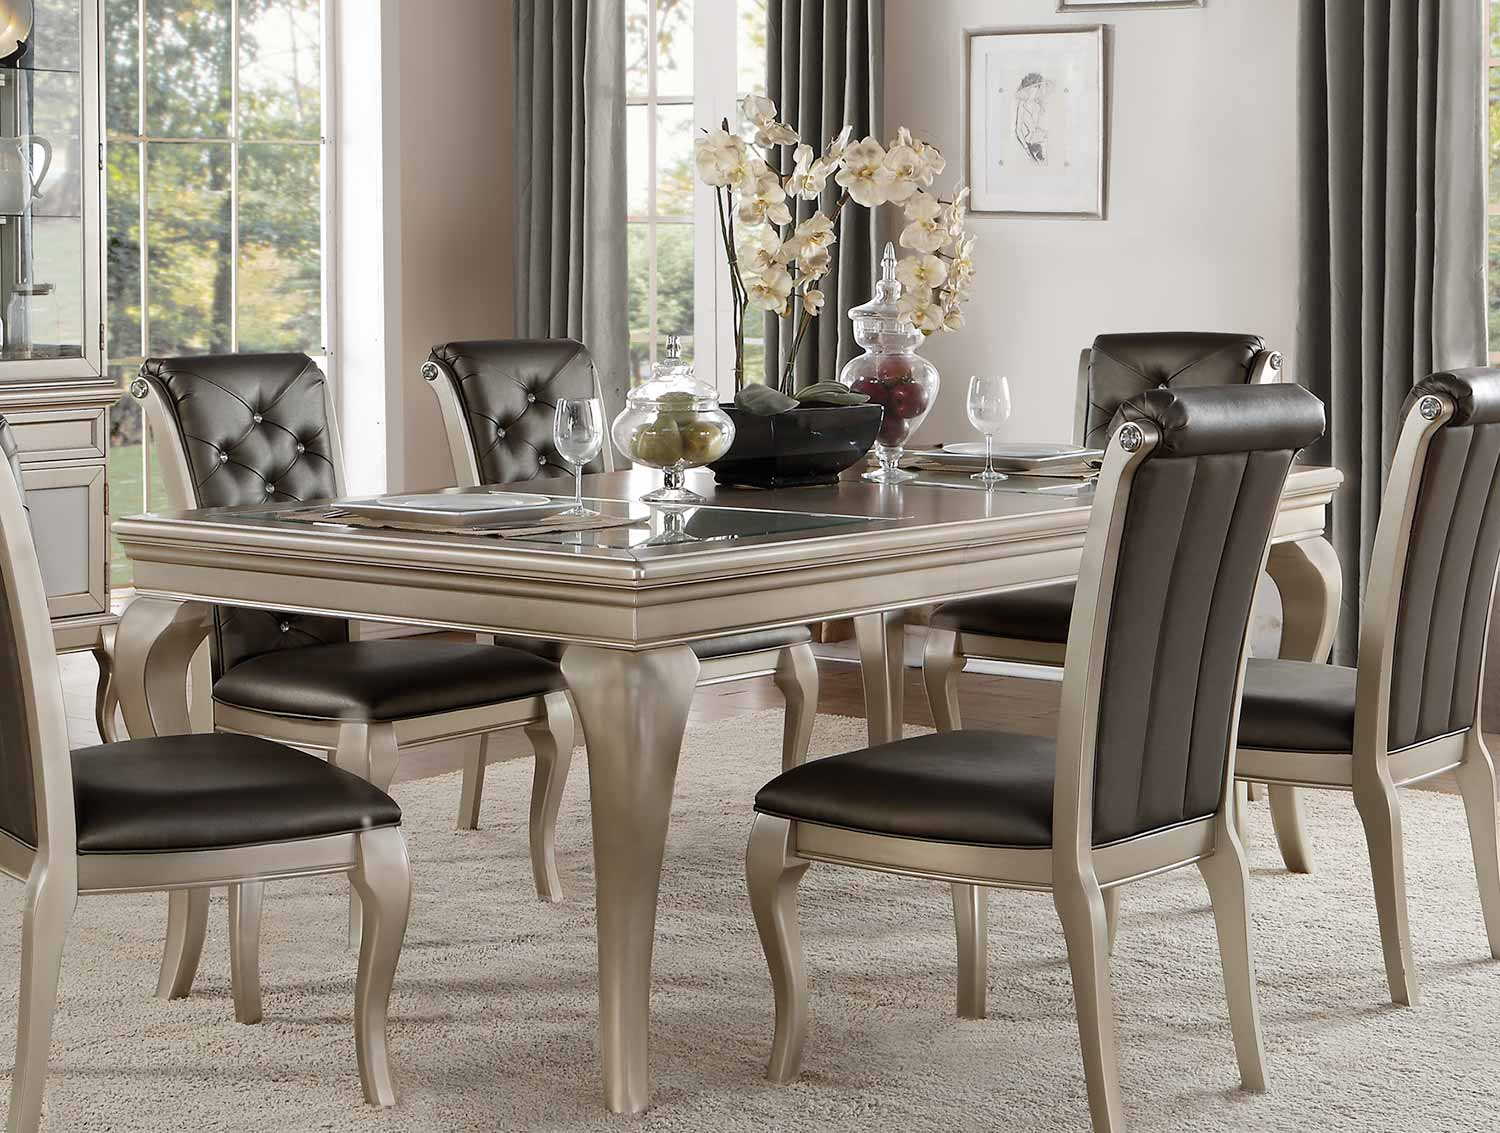 Homelegance Crawford Dining Table with Leaf - Silver